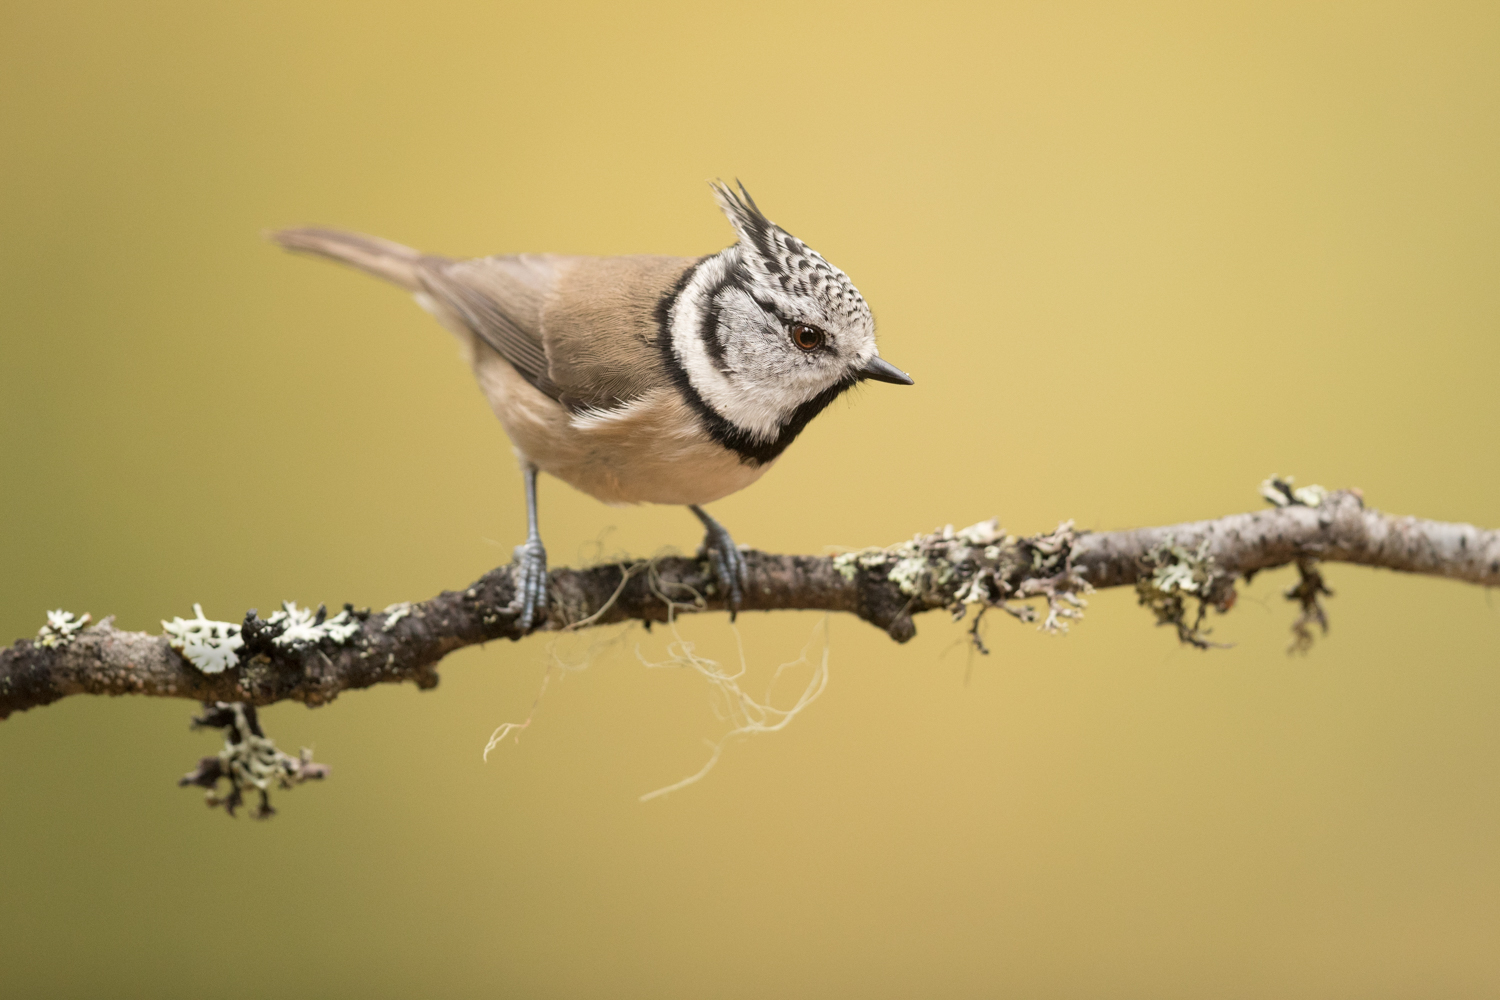 Crested_Tit_MG_0412-2.jpg